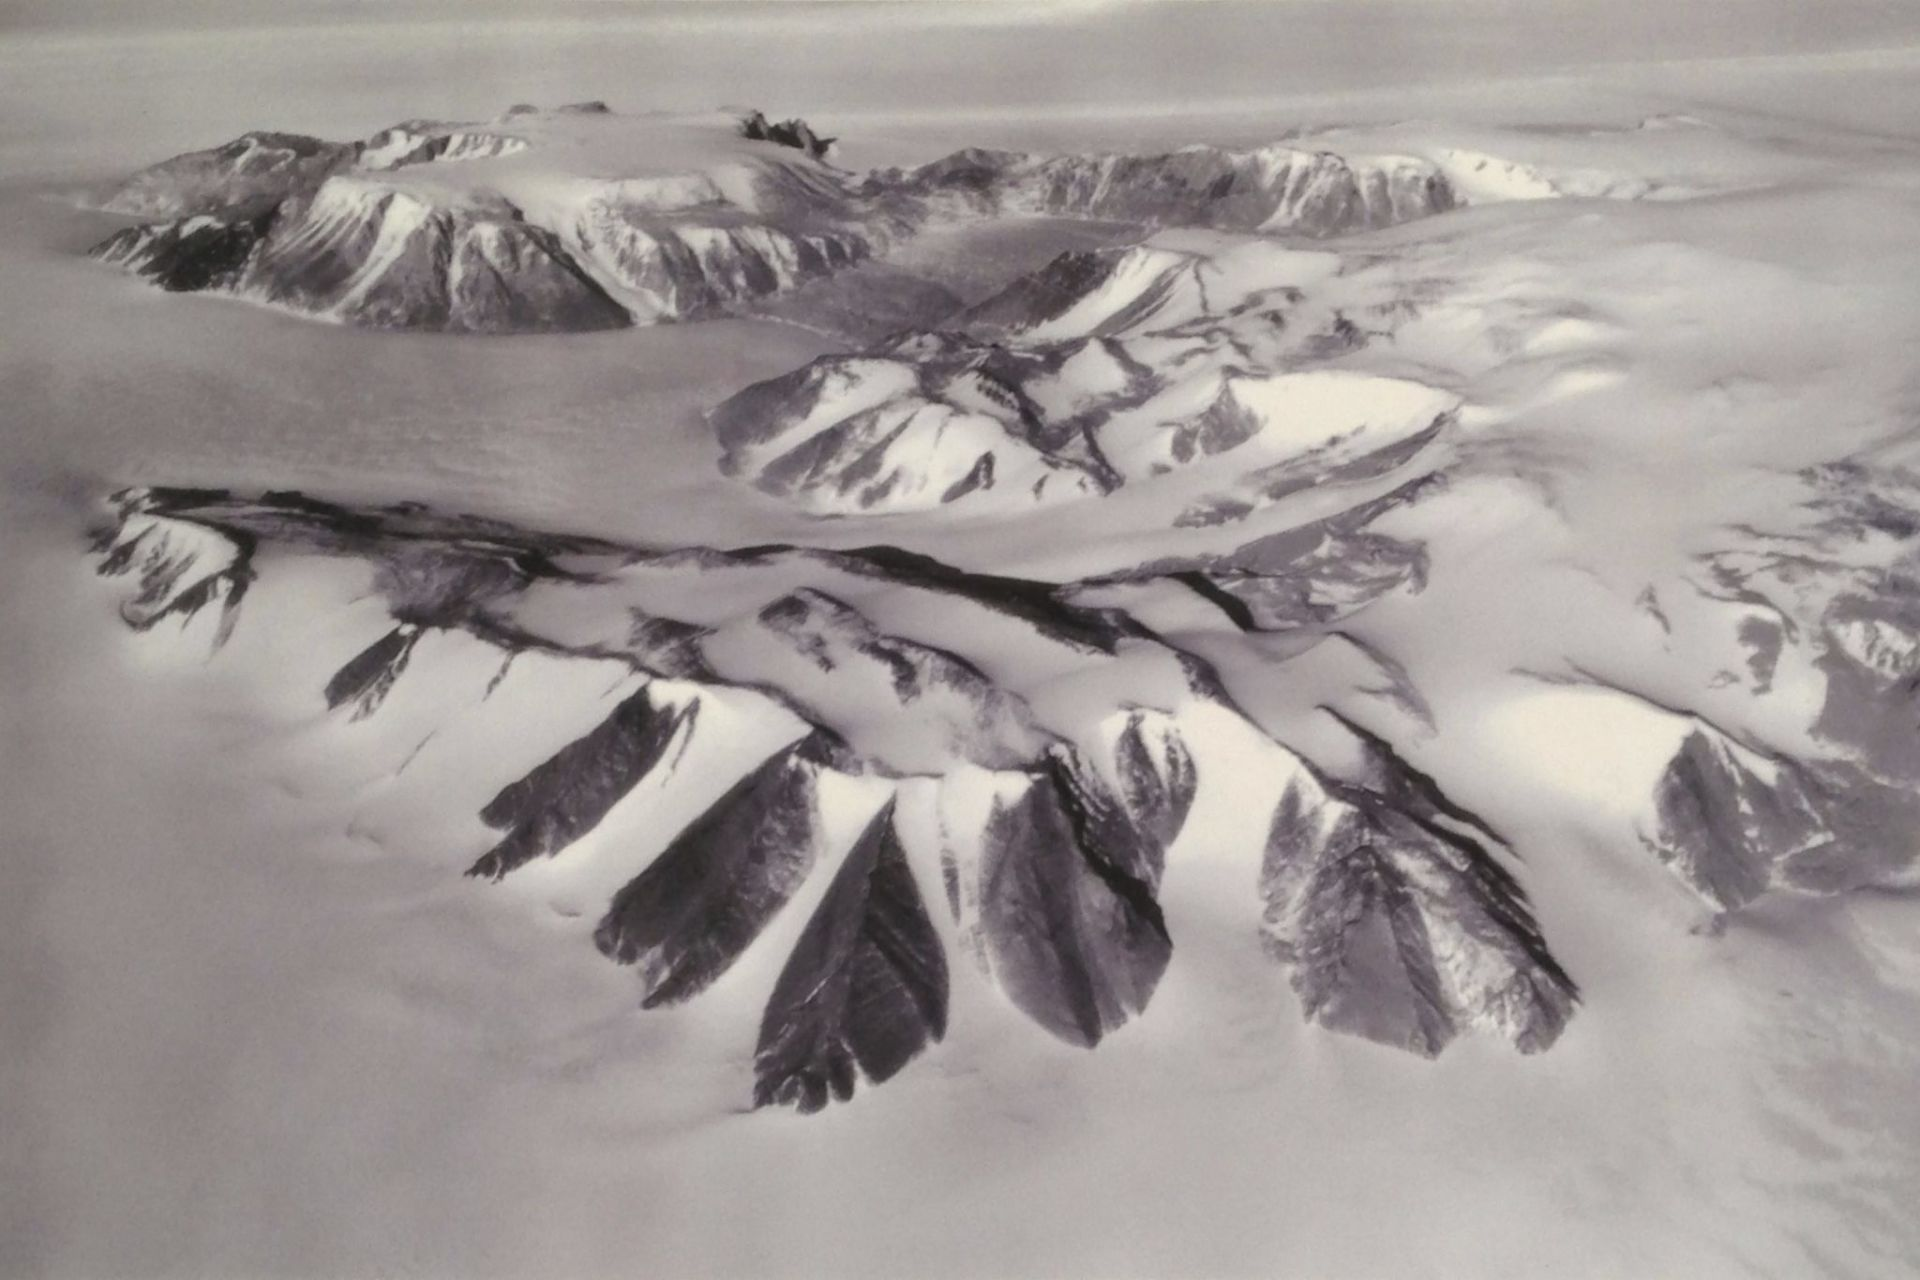 Aerial photo of Greene Ridge, Antarctica